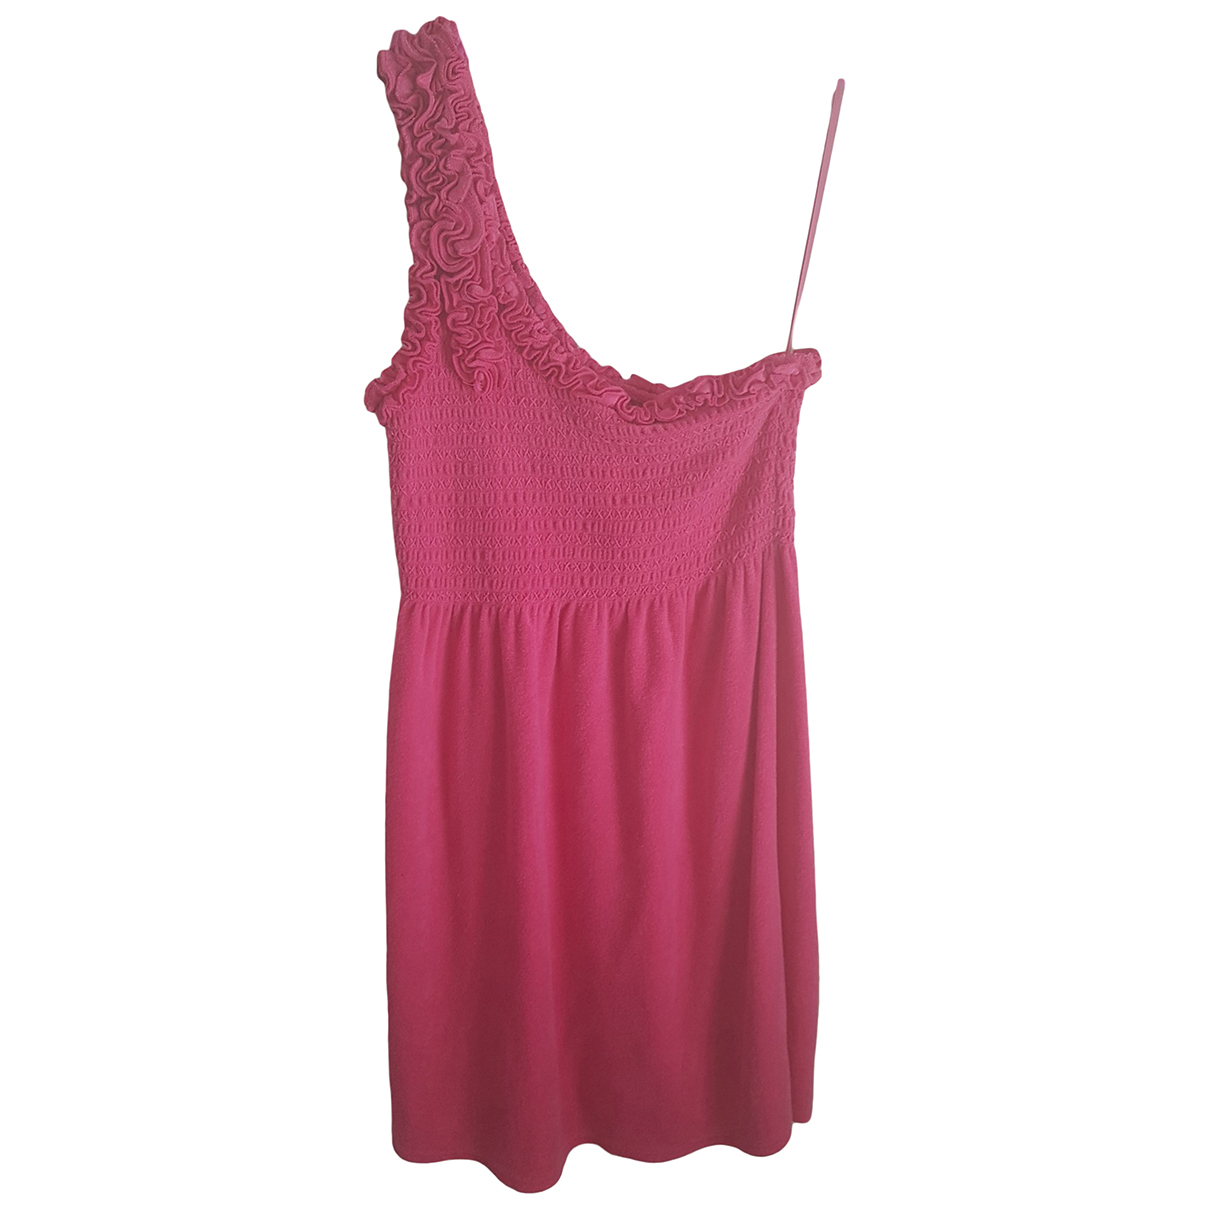 Juicy Couture \N Pink Cotton dress for Women M International